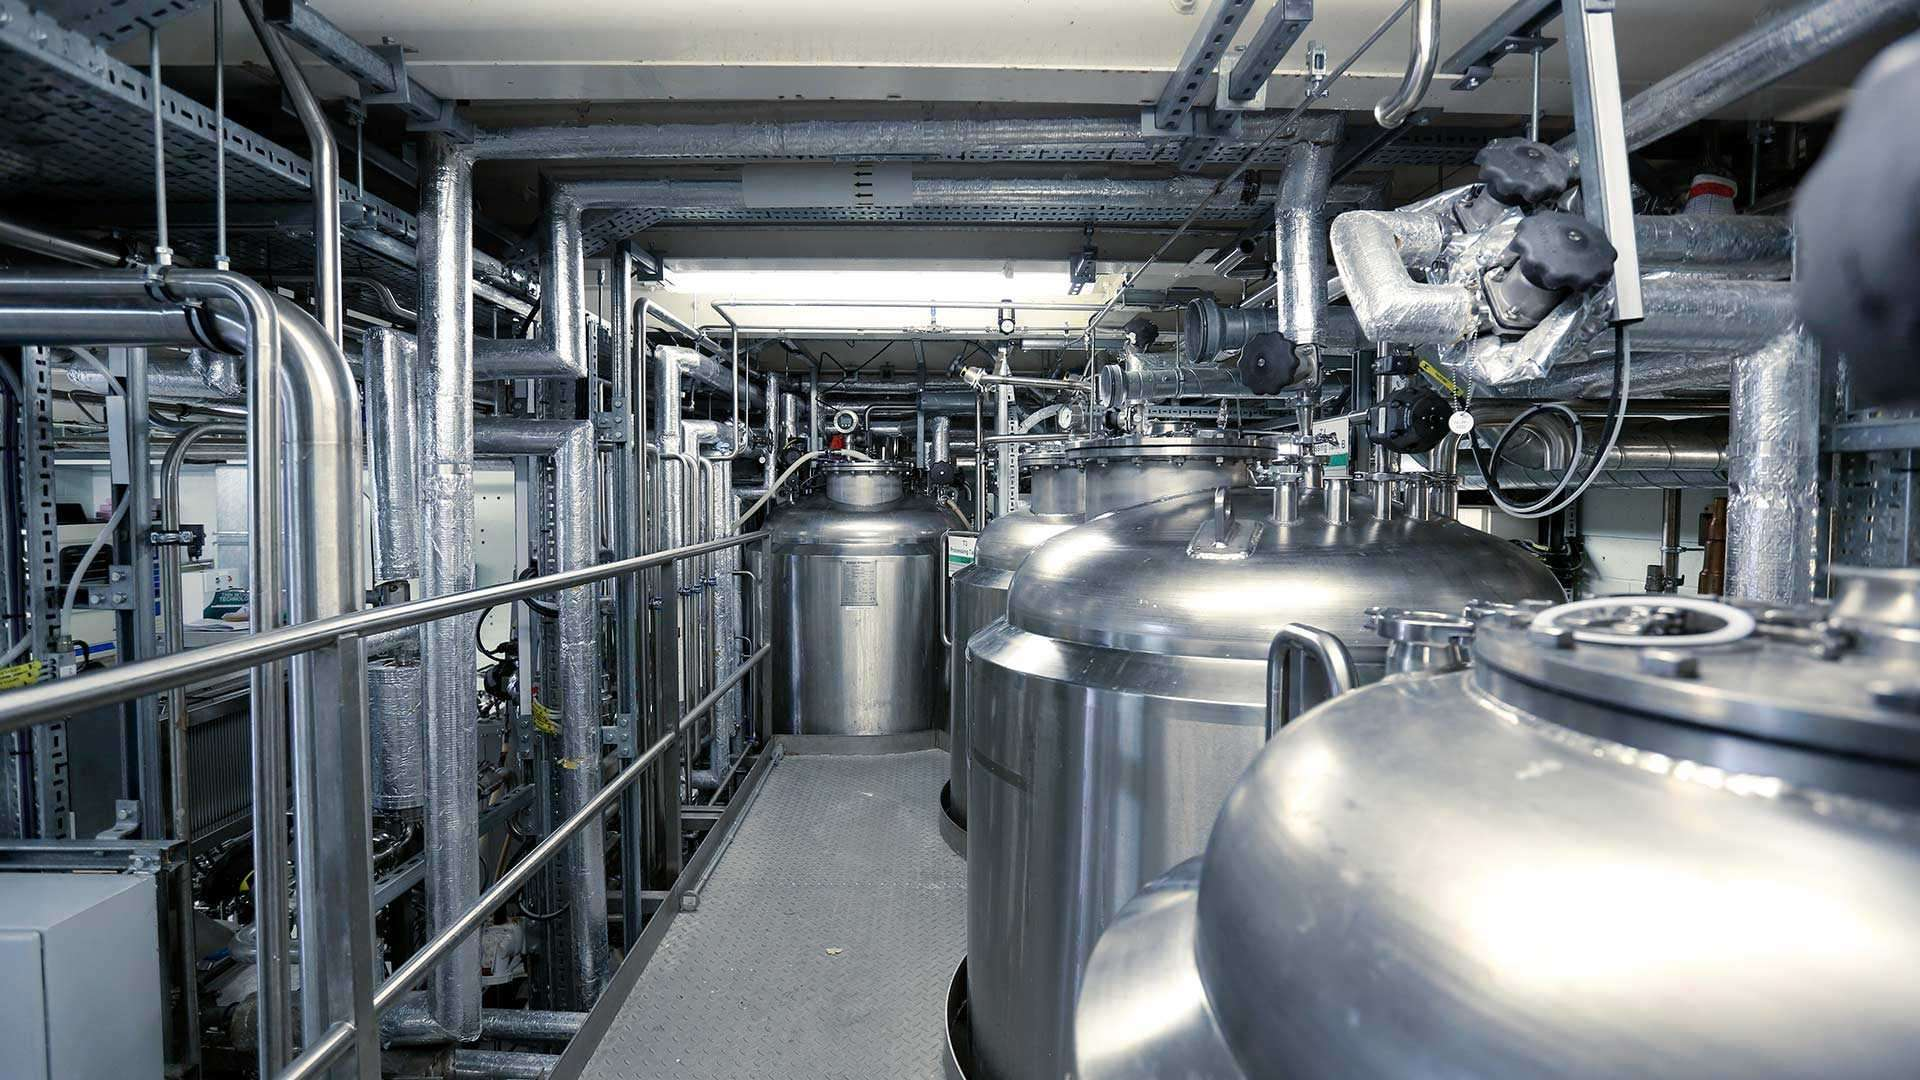 A photo of large tanks in an industrial plant